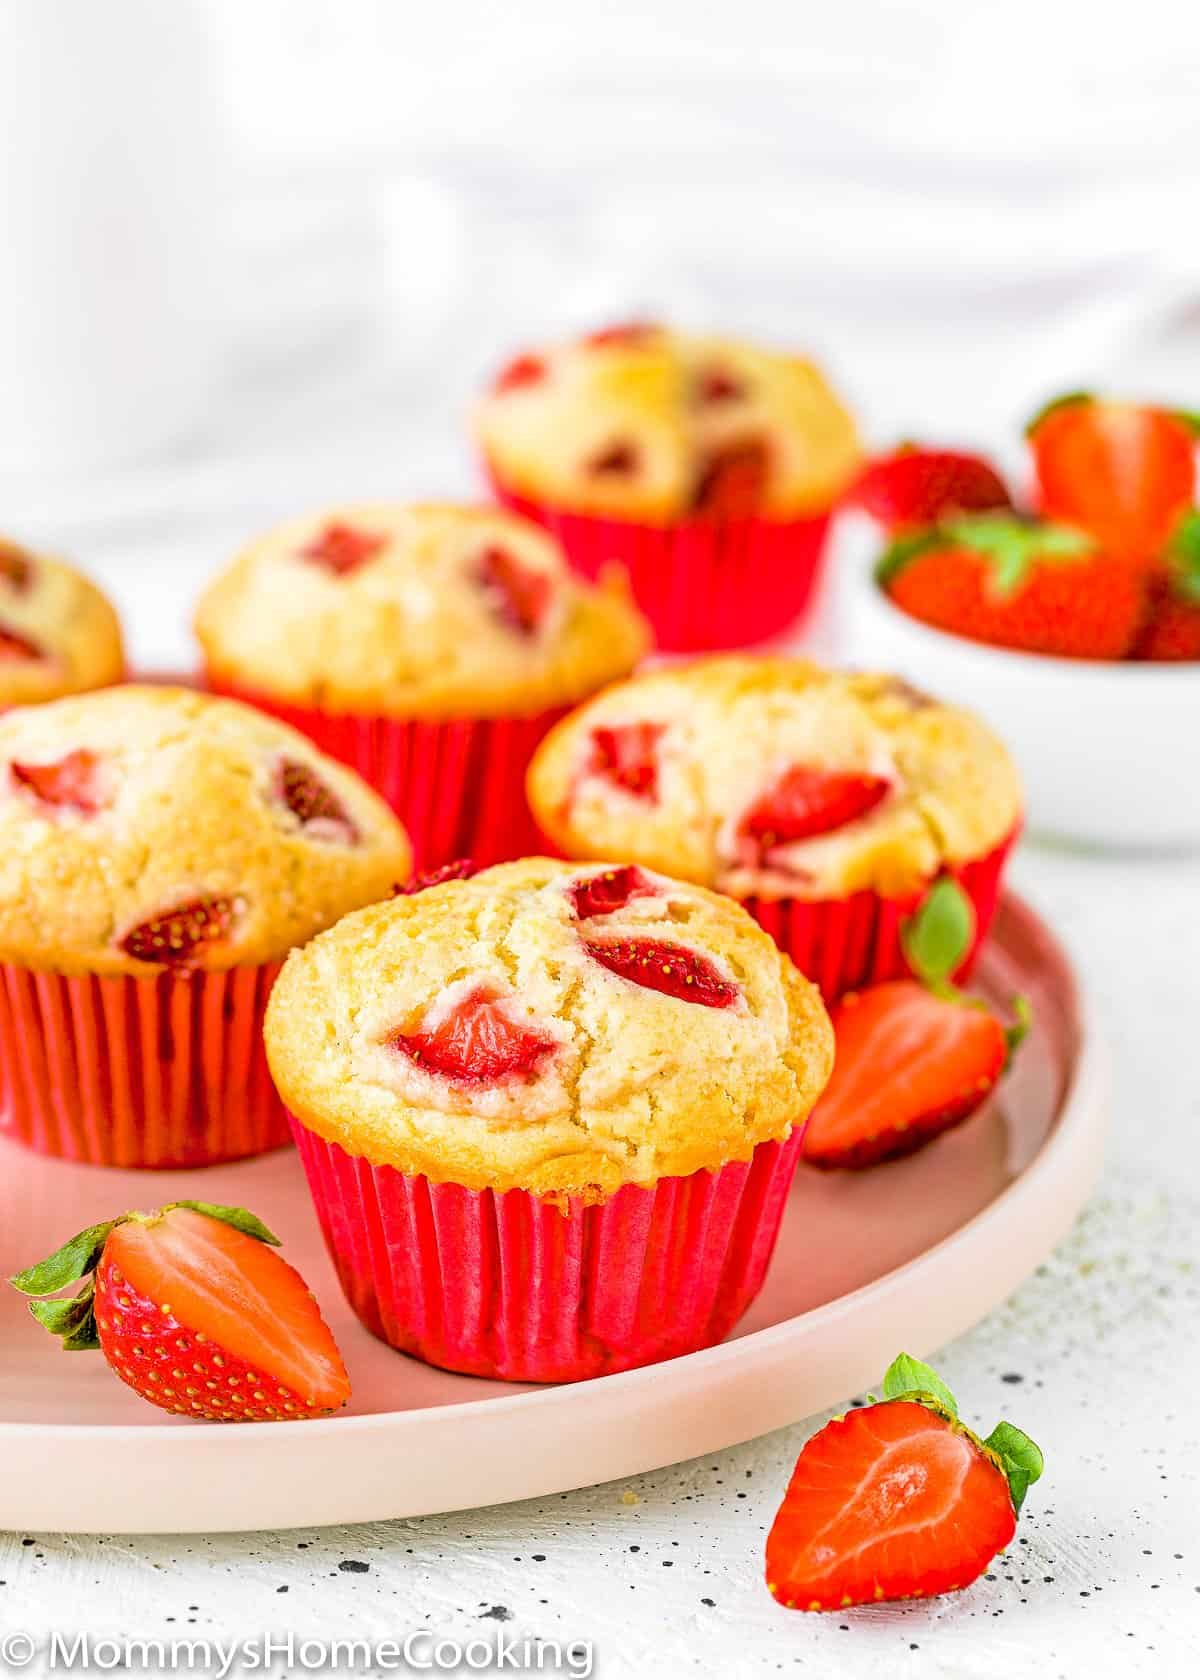 eggless strawberry muffins with fresh sliced strawberries on a plate